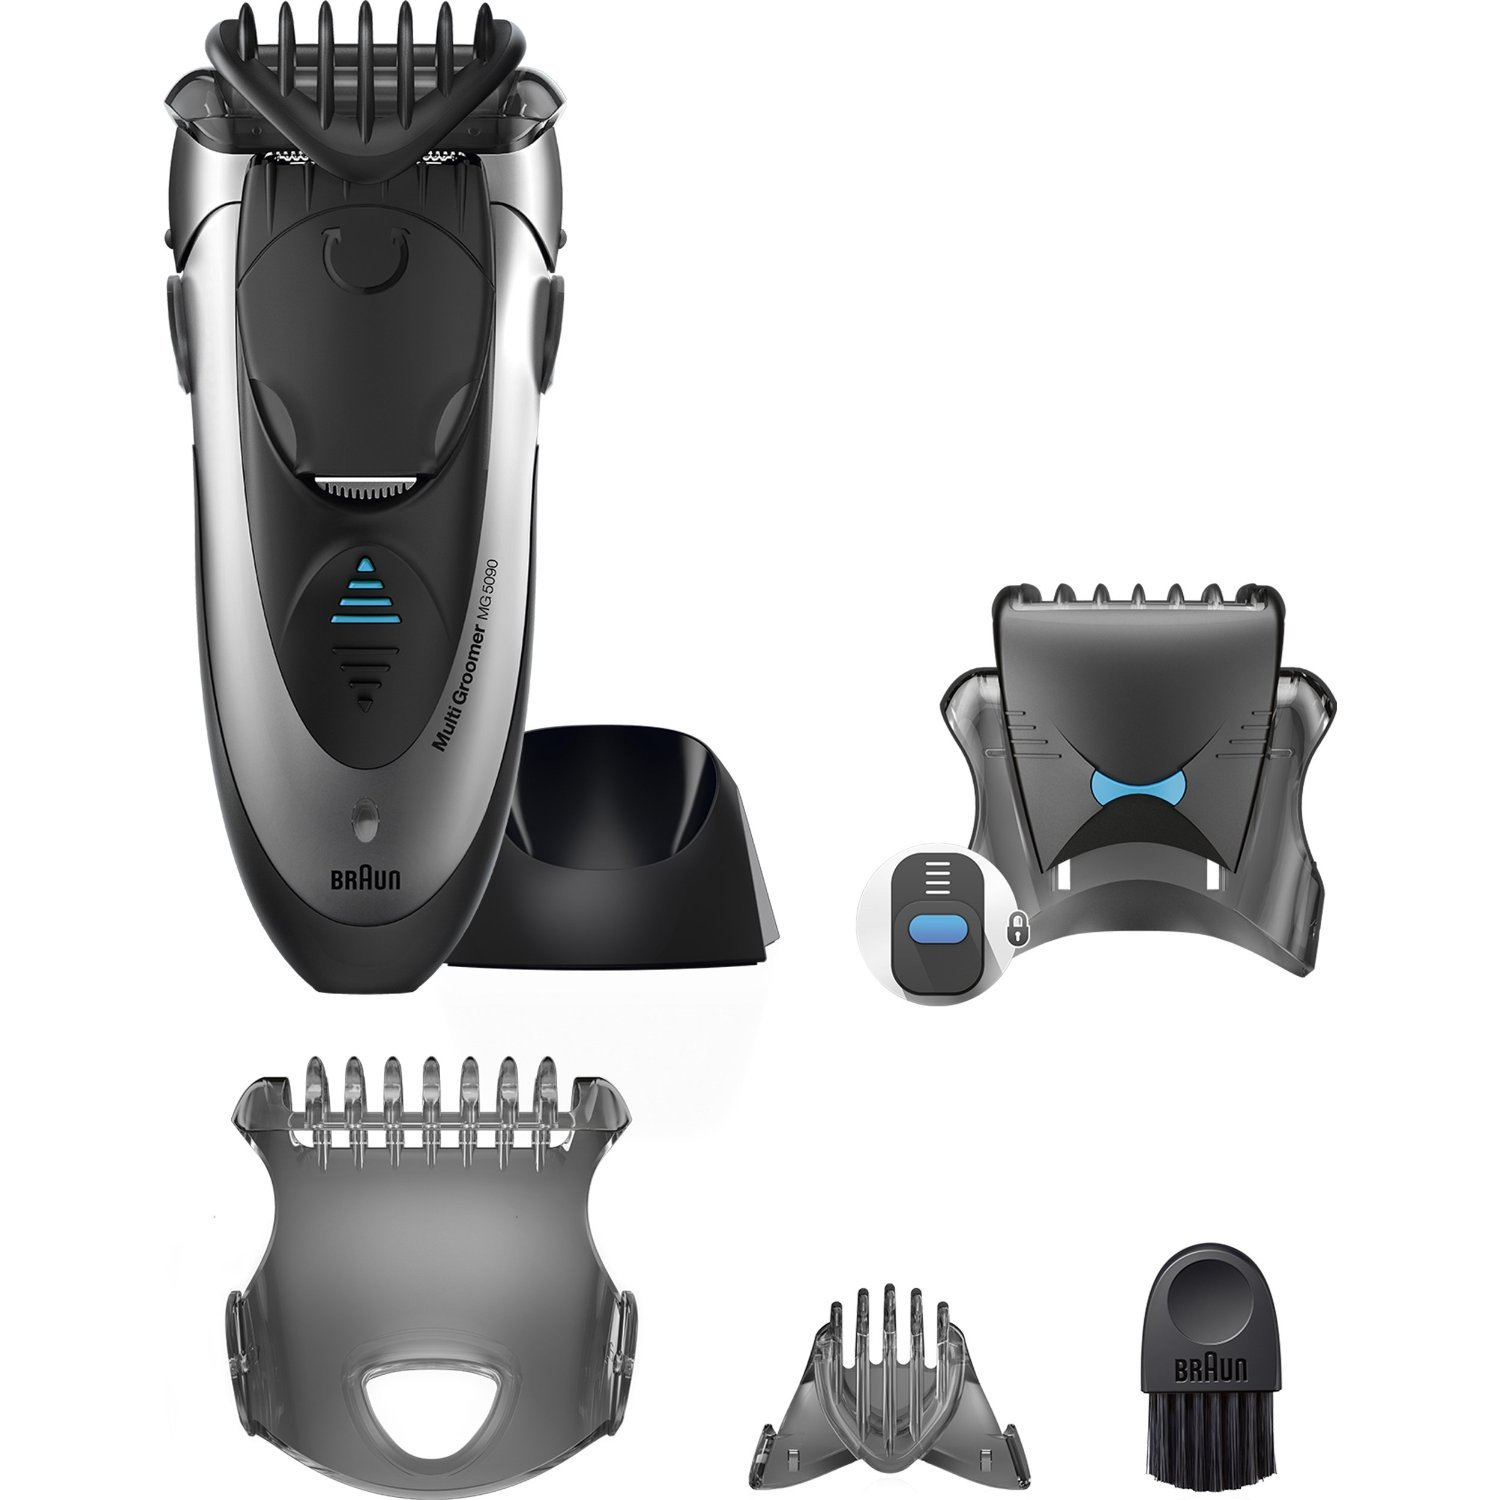 Braun Cordless WASHABLE Mens Hair Trimmer and Multi Groomer with Multiple Attachment Combs and BONUS FREE Body Spray Included